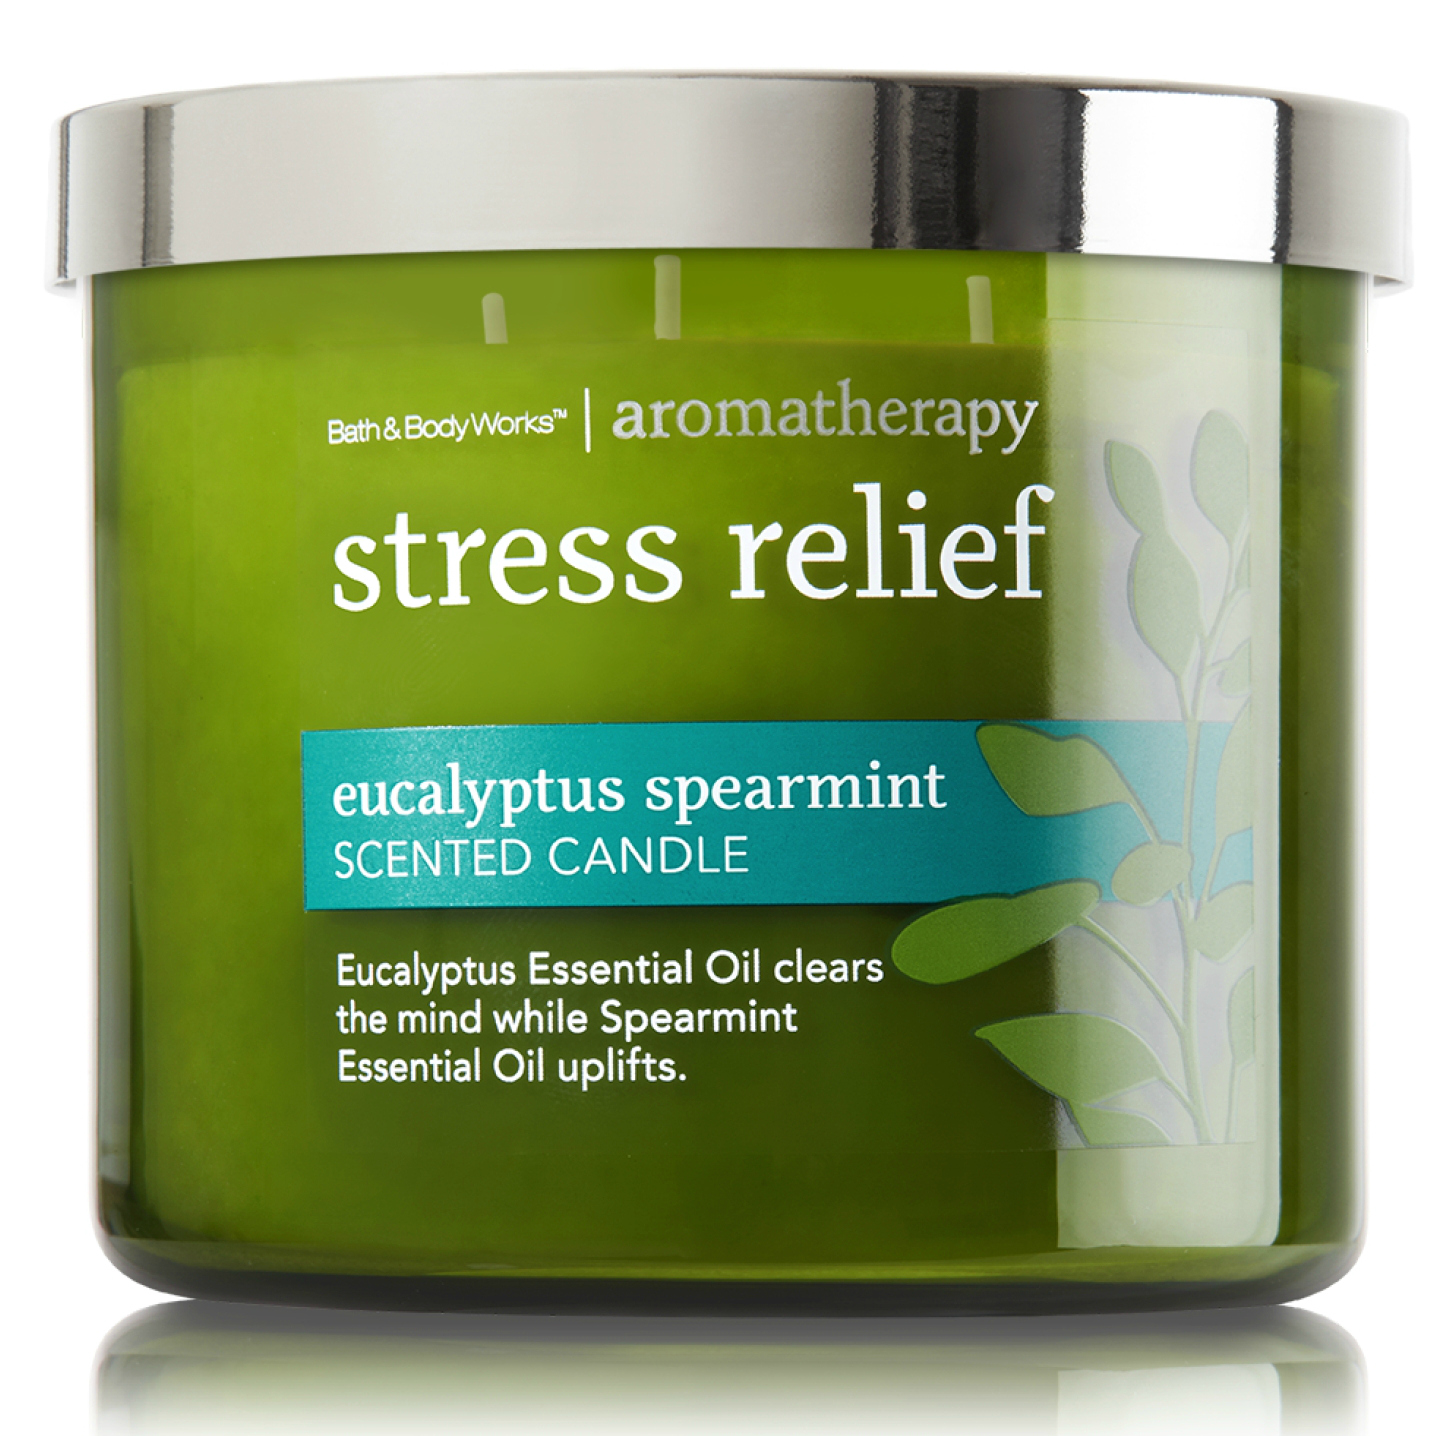 Bath and Body Works Eucalyptus Spearmint Candle